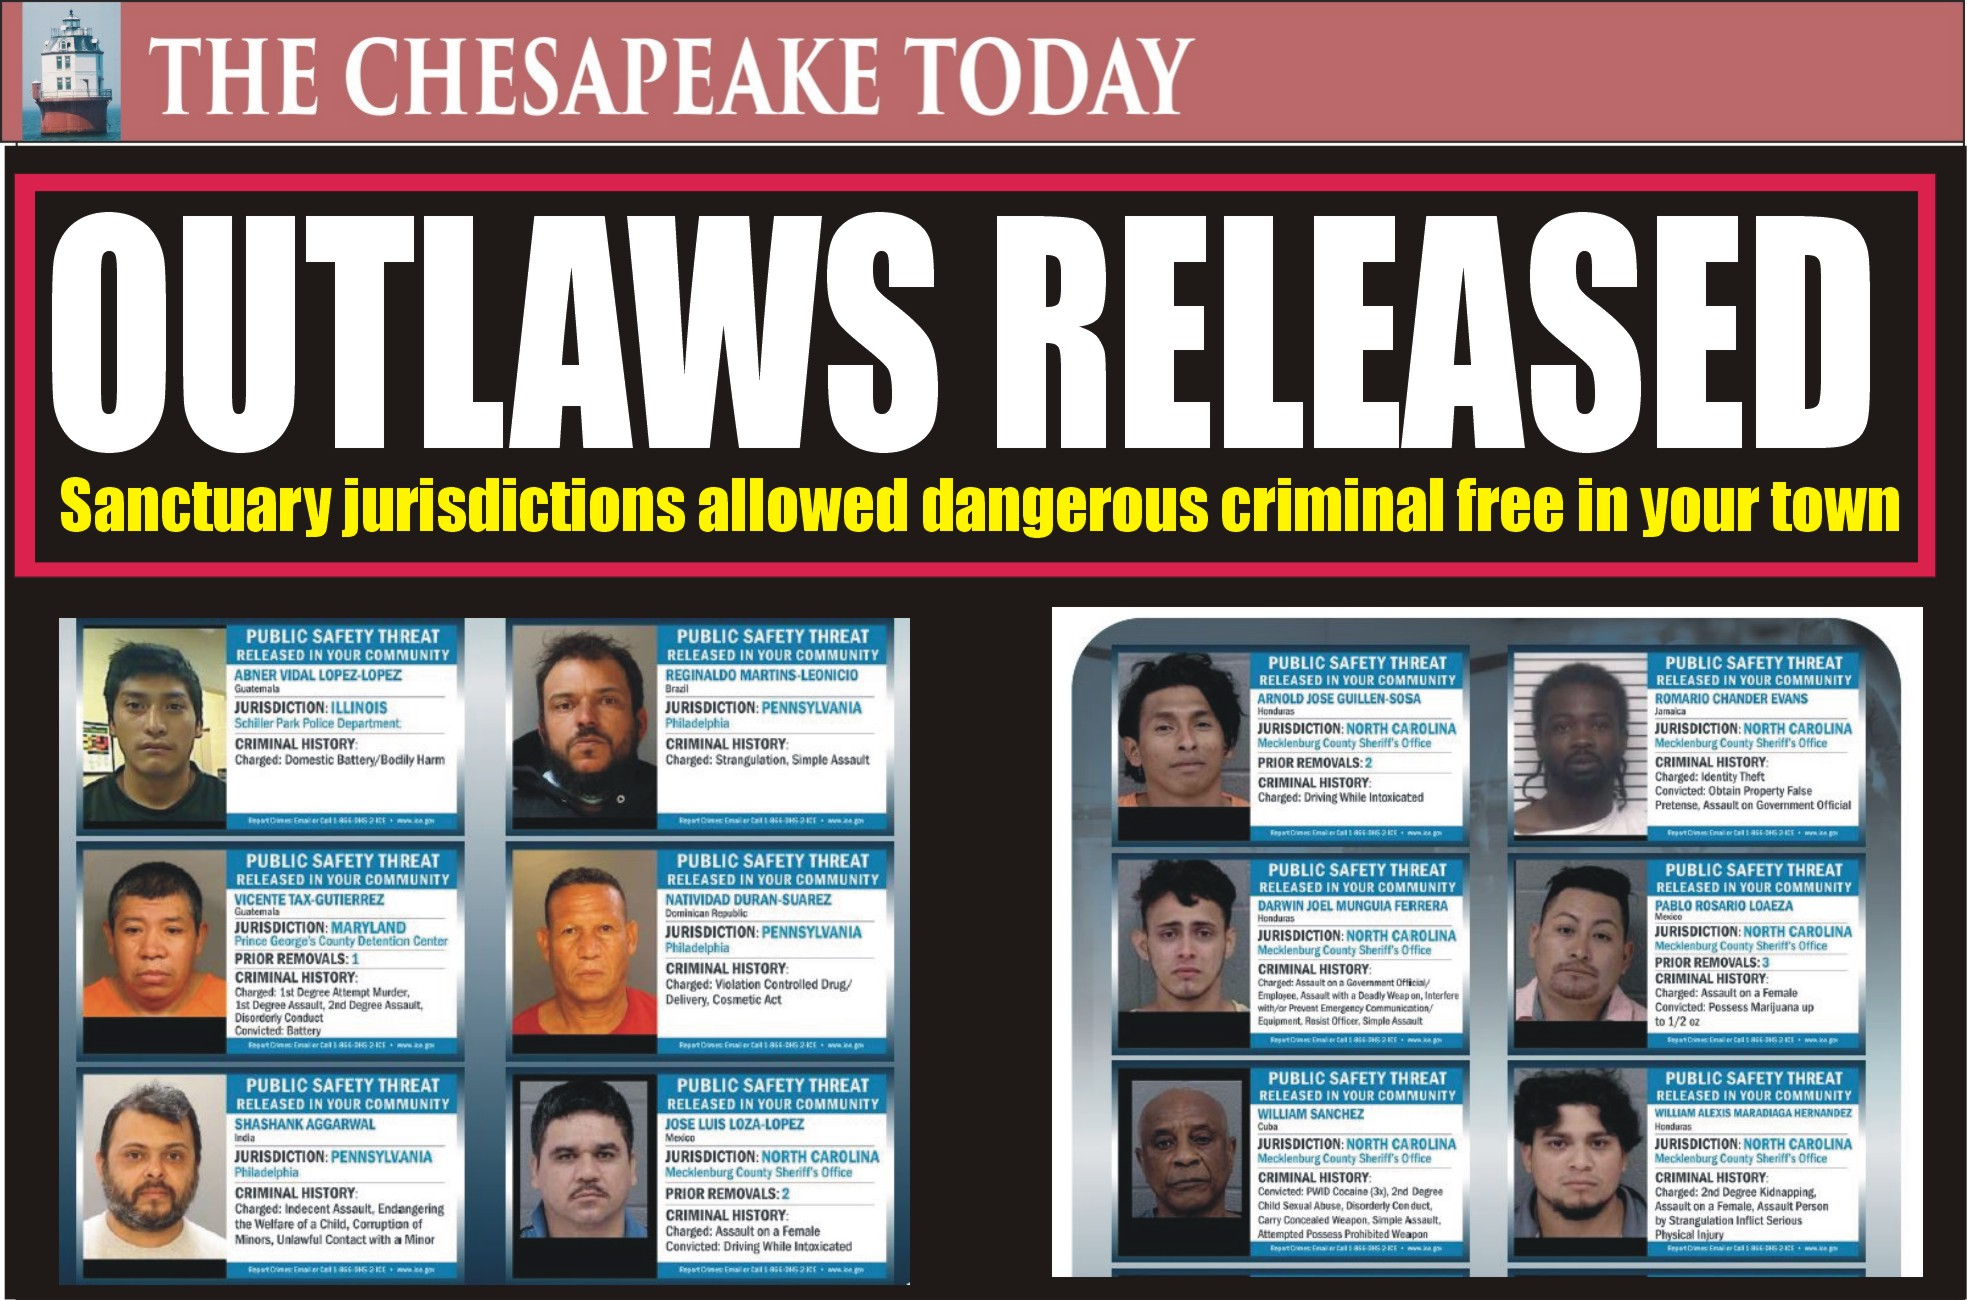 CRIMINAL MIGRANTS: These criminals have been released into your community by sanctuary jurisdictions